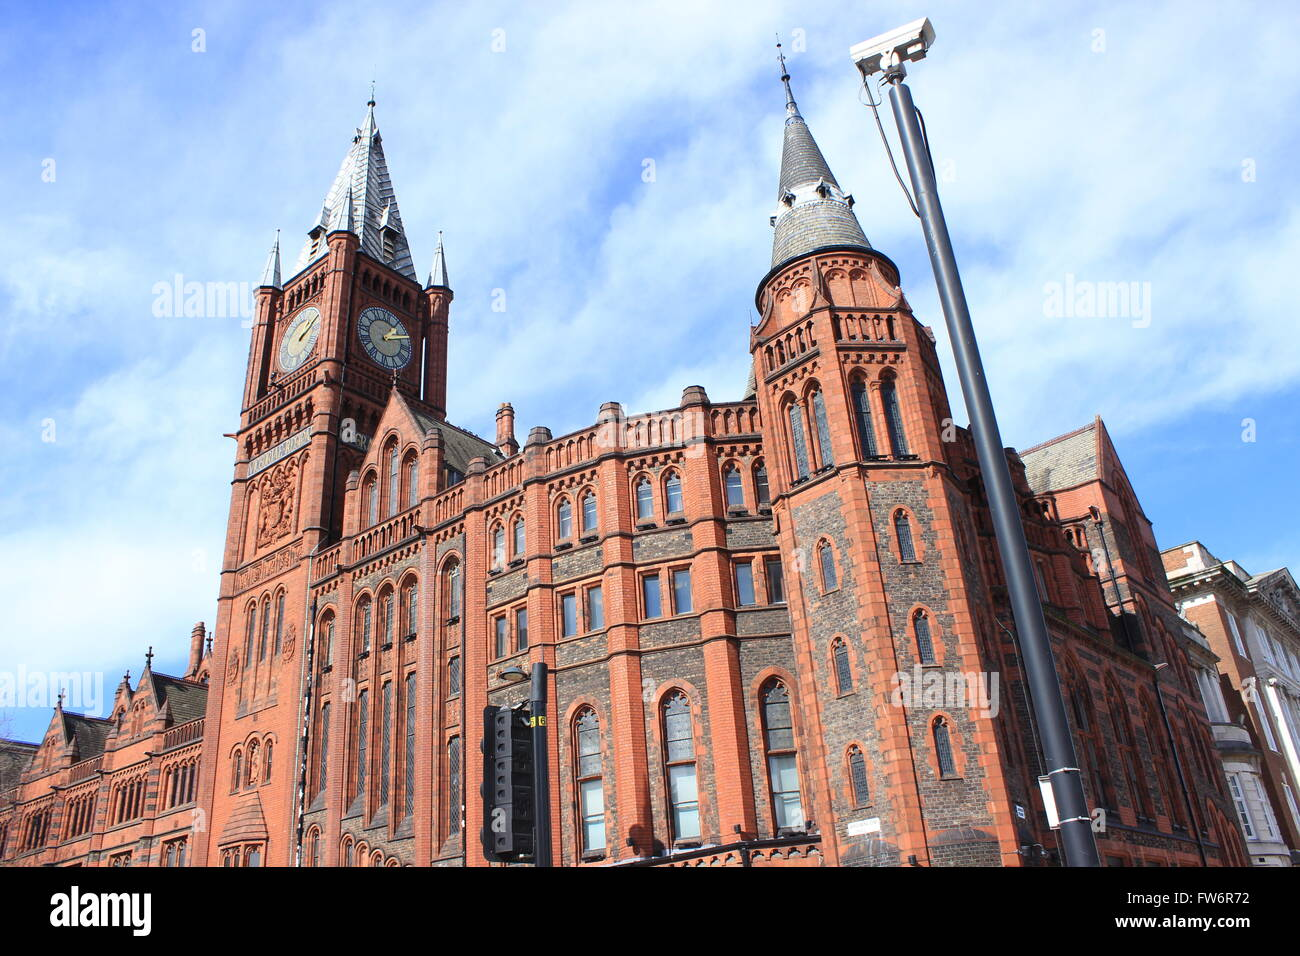 University of Liverpool Victoria Gallery and Museum - Stock Image